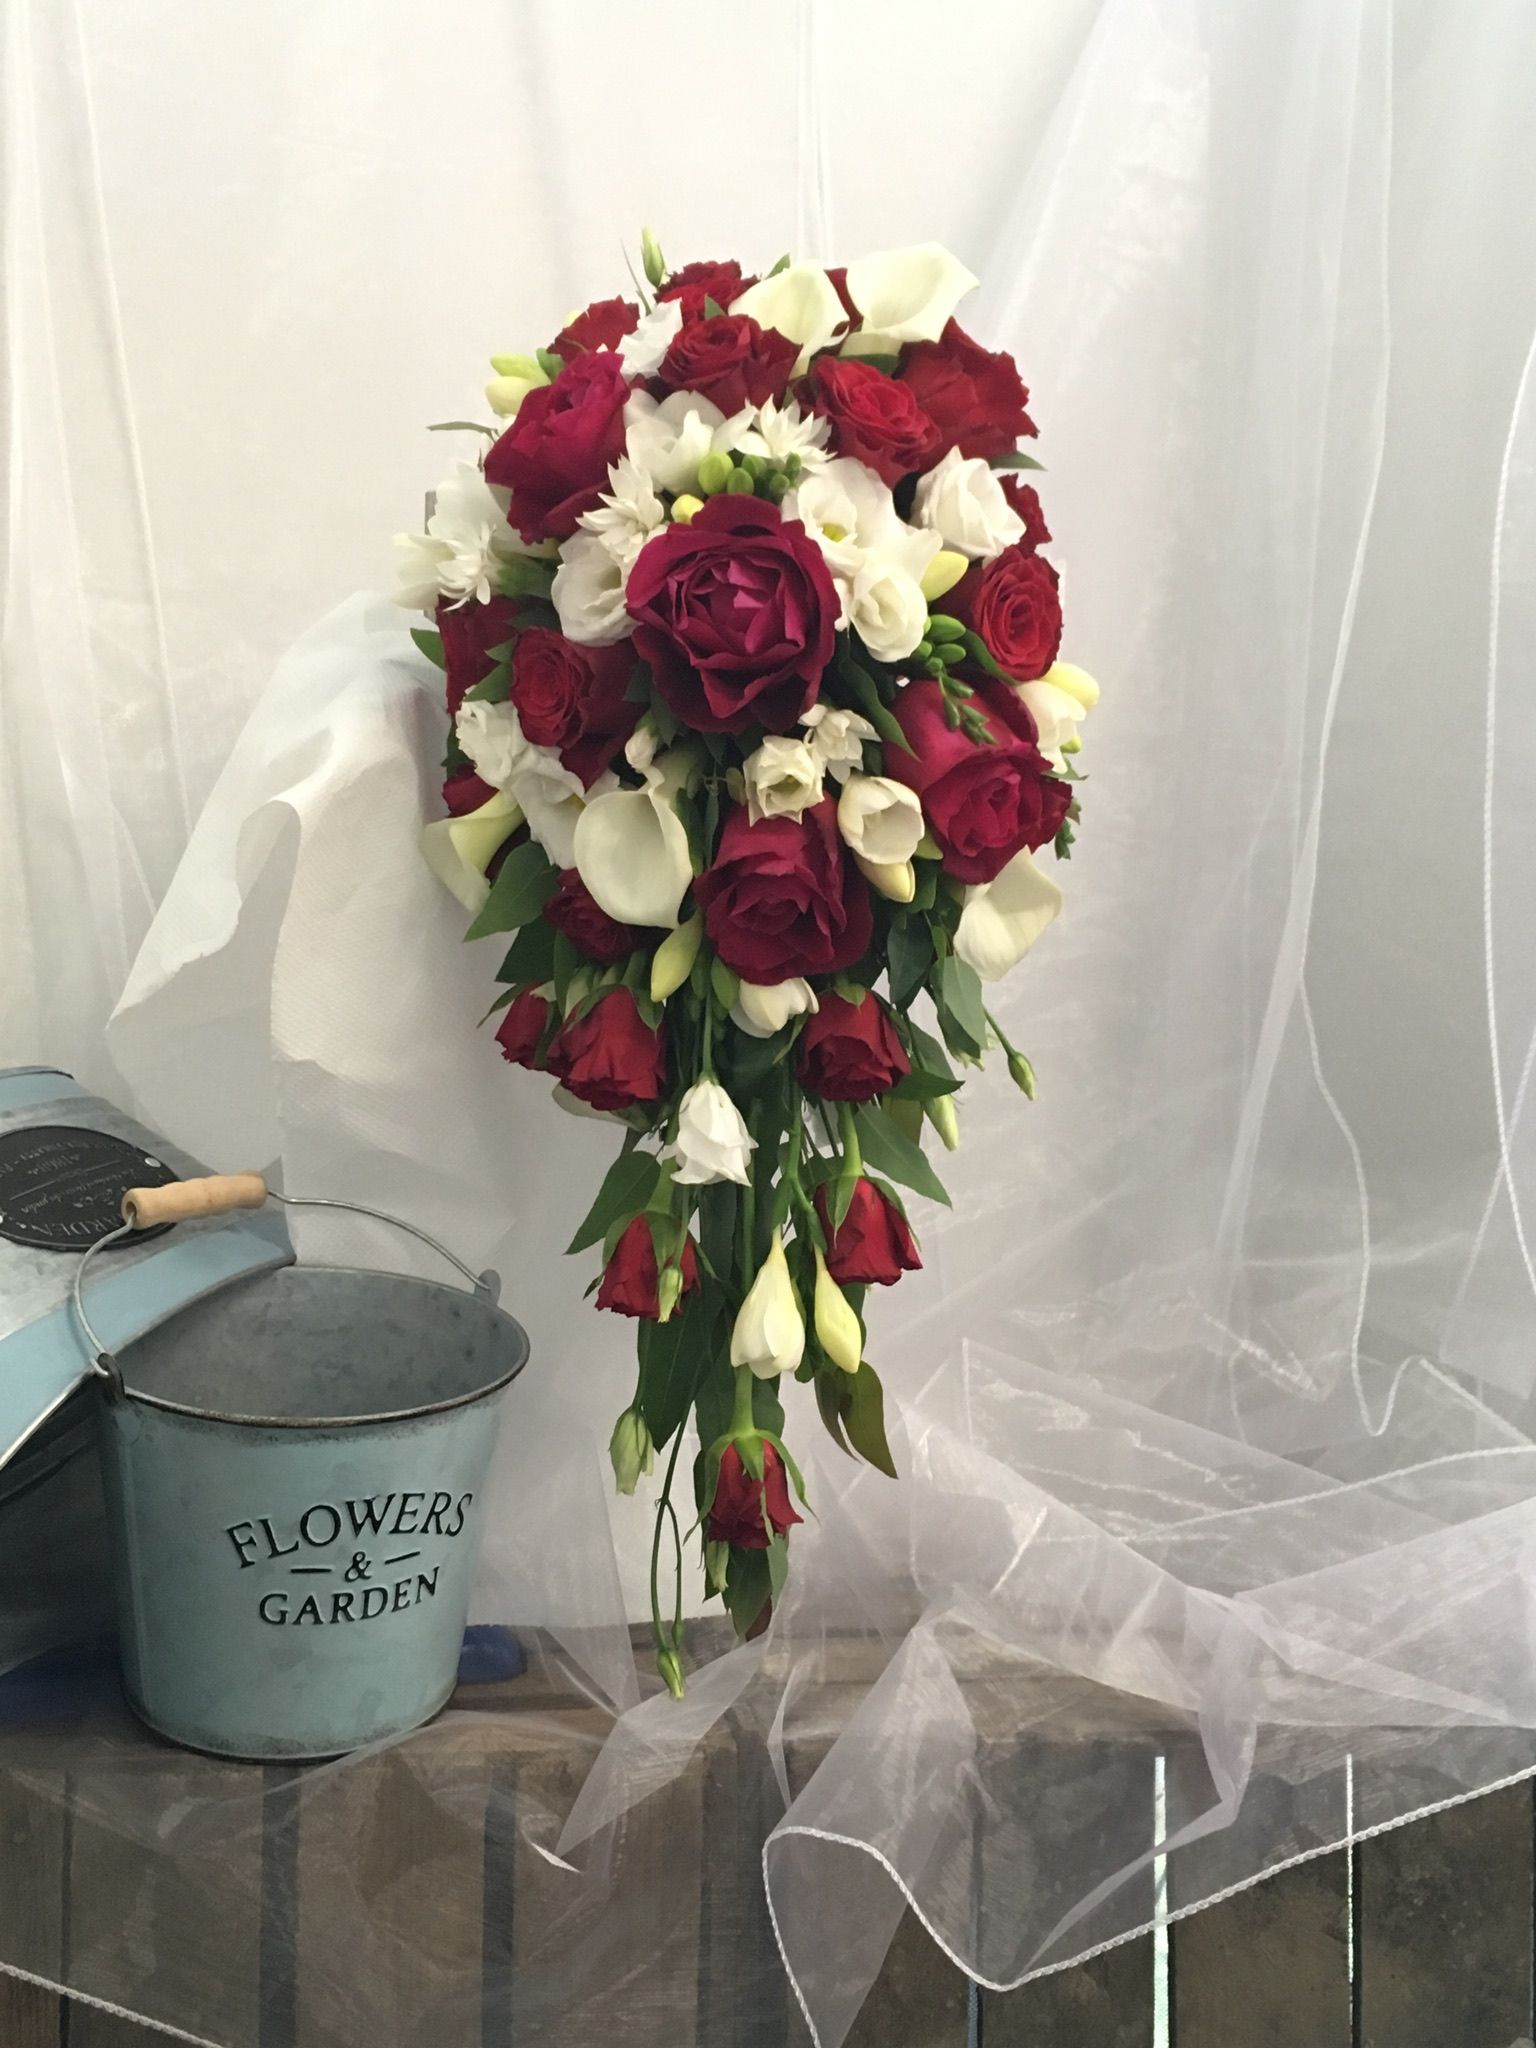 Wedding bouquets teardrop  Gorgeous red rose and white seasonal flowers brides bridal teardrop